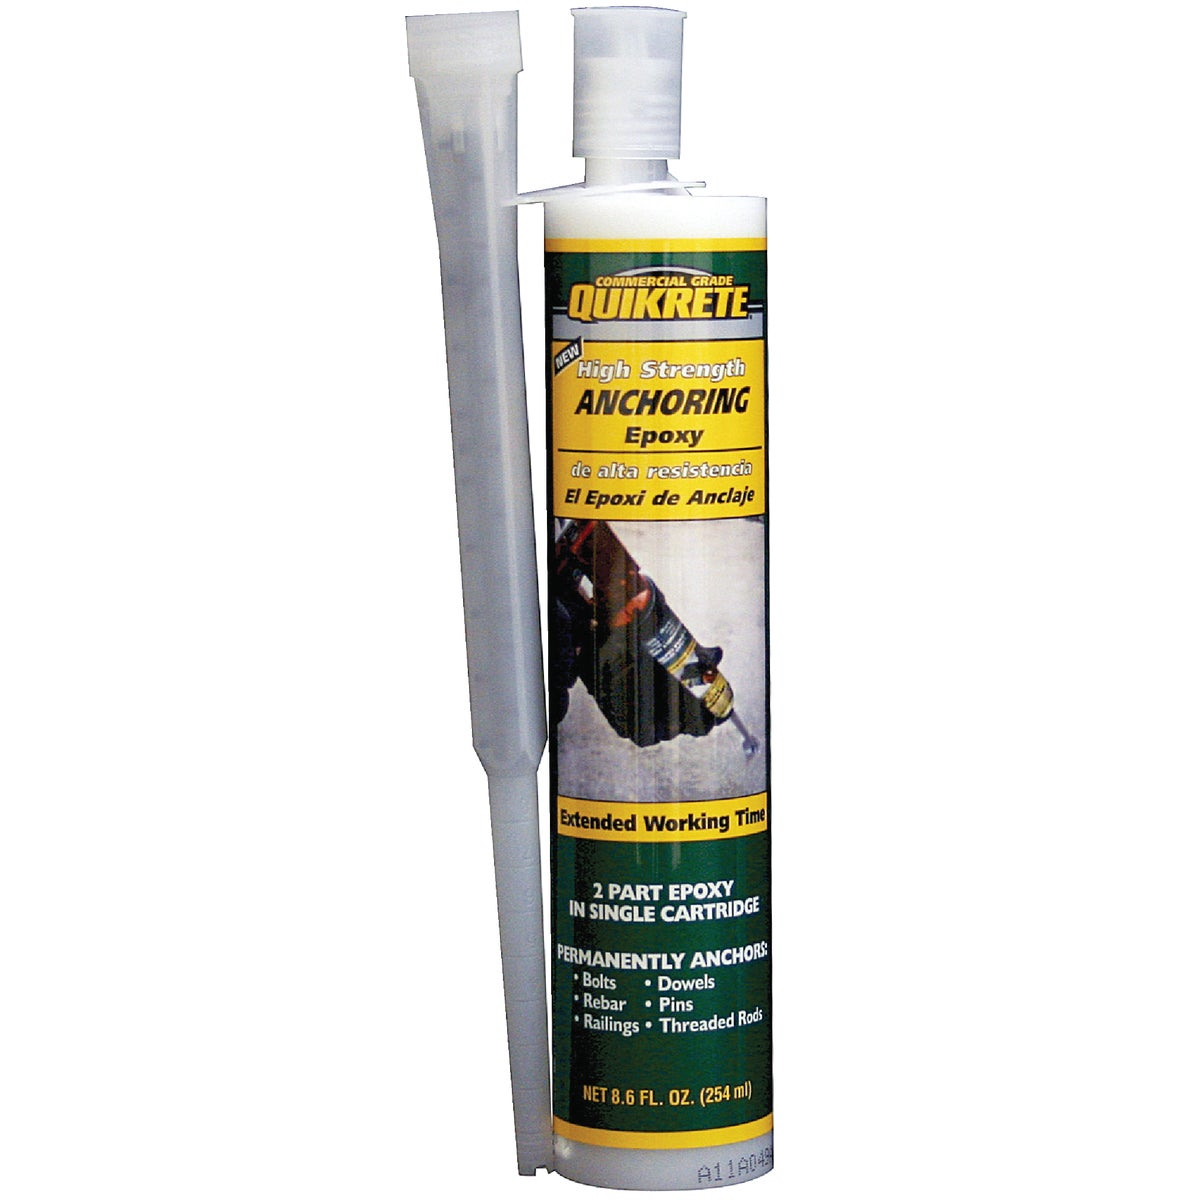 Quikrete 862031 High Strength Anchor Epoxy, 8.6 oz Size, Gray